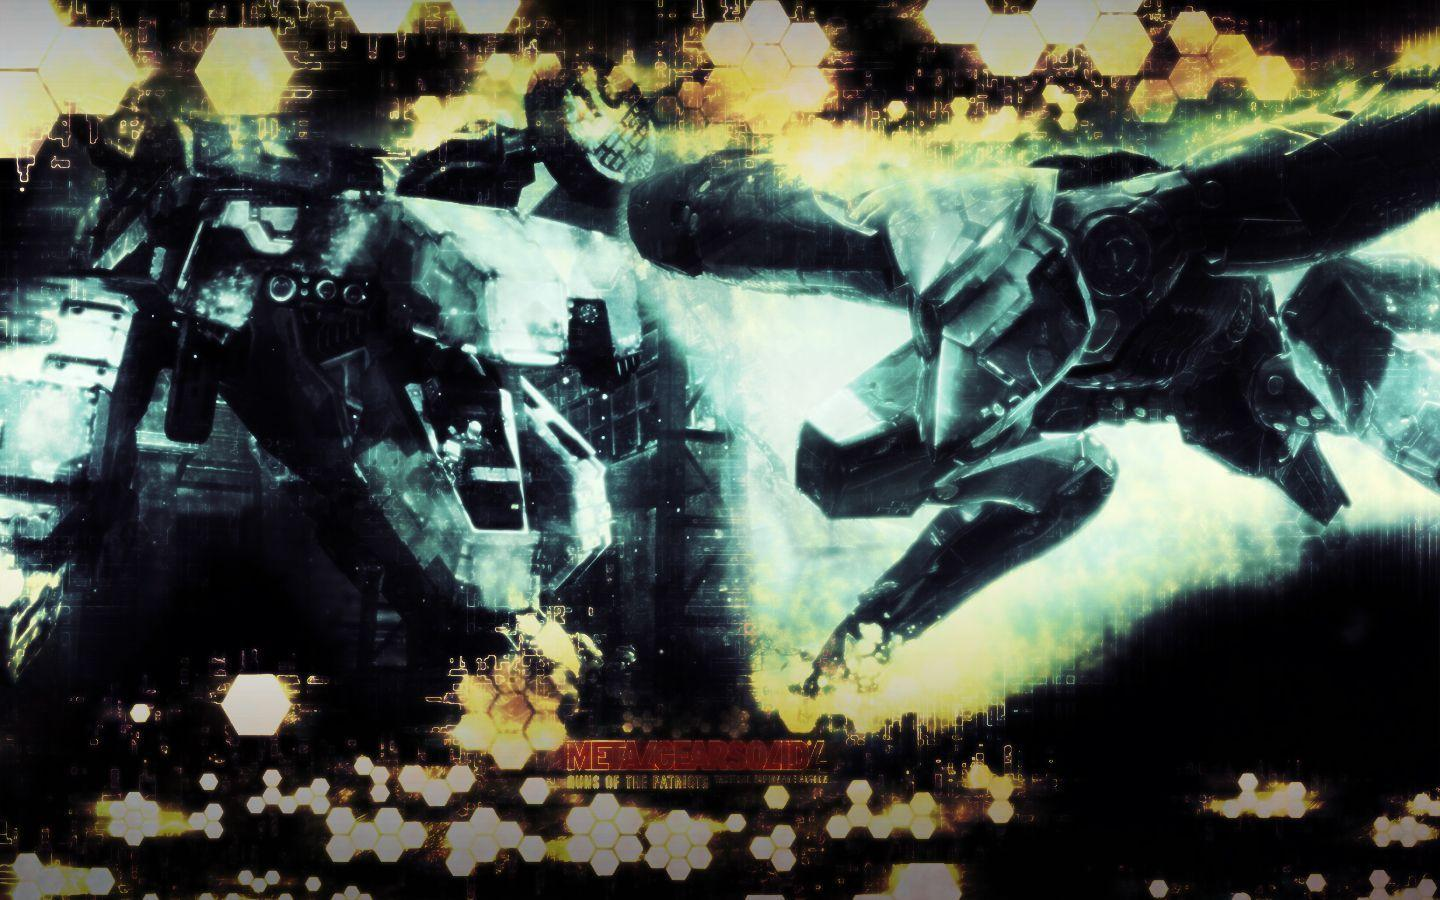 The Top 15 Moments In The Metal Gear Solid Series